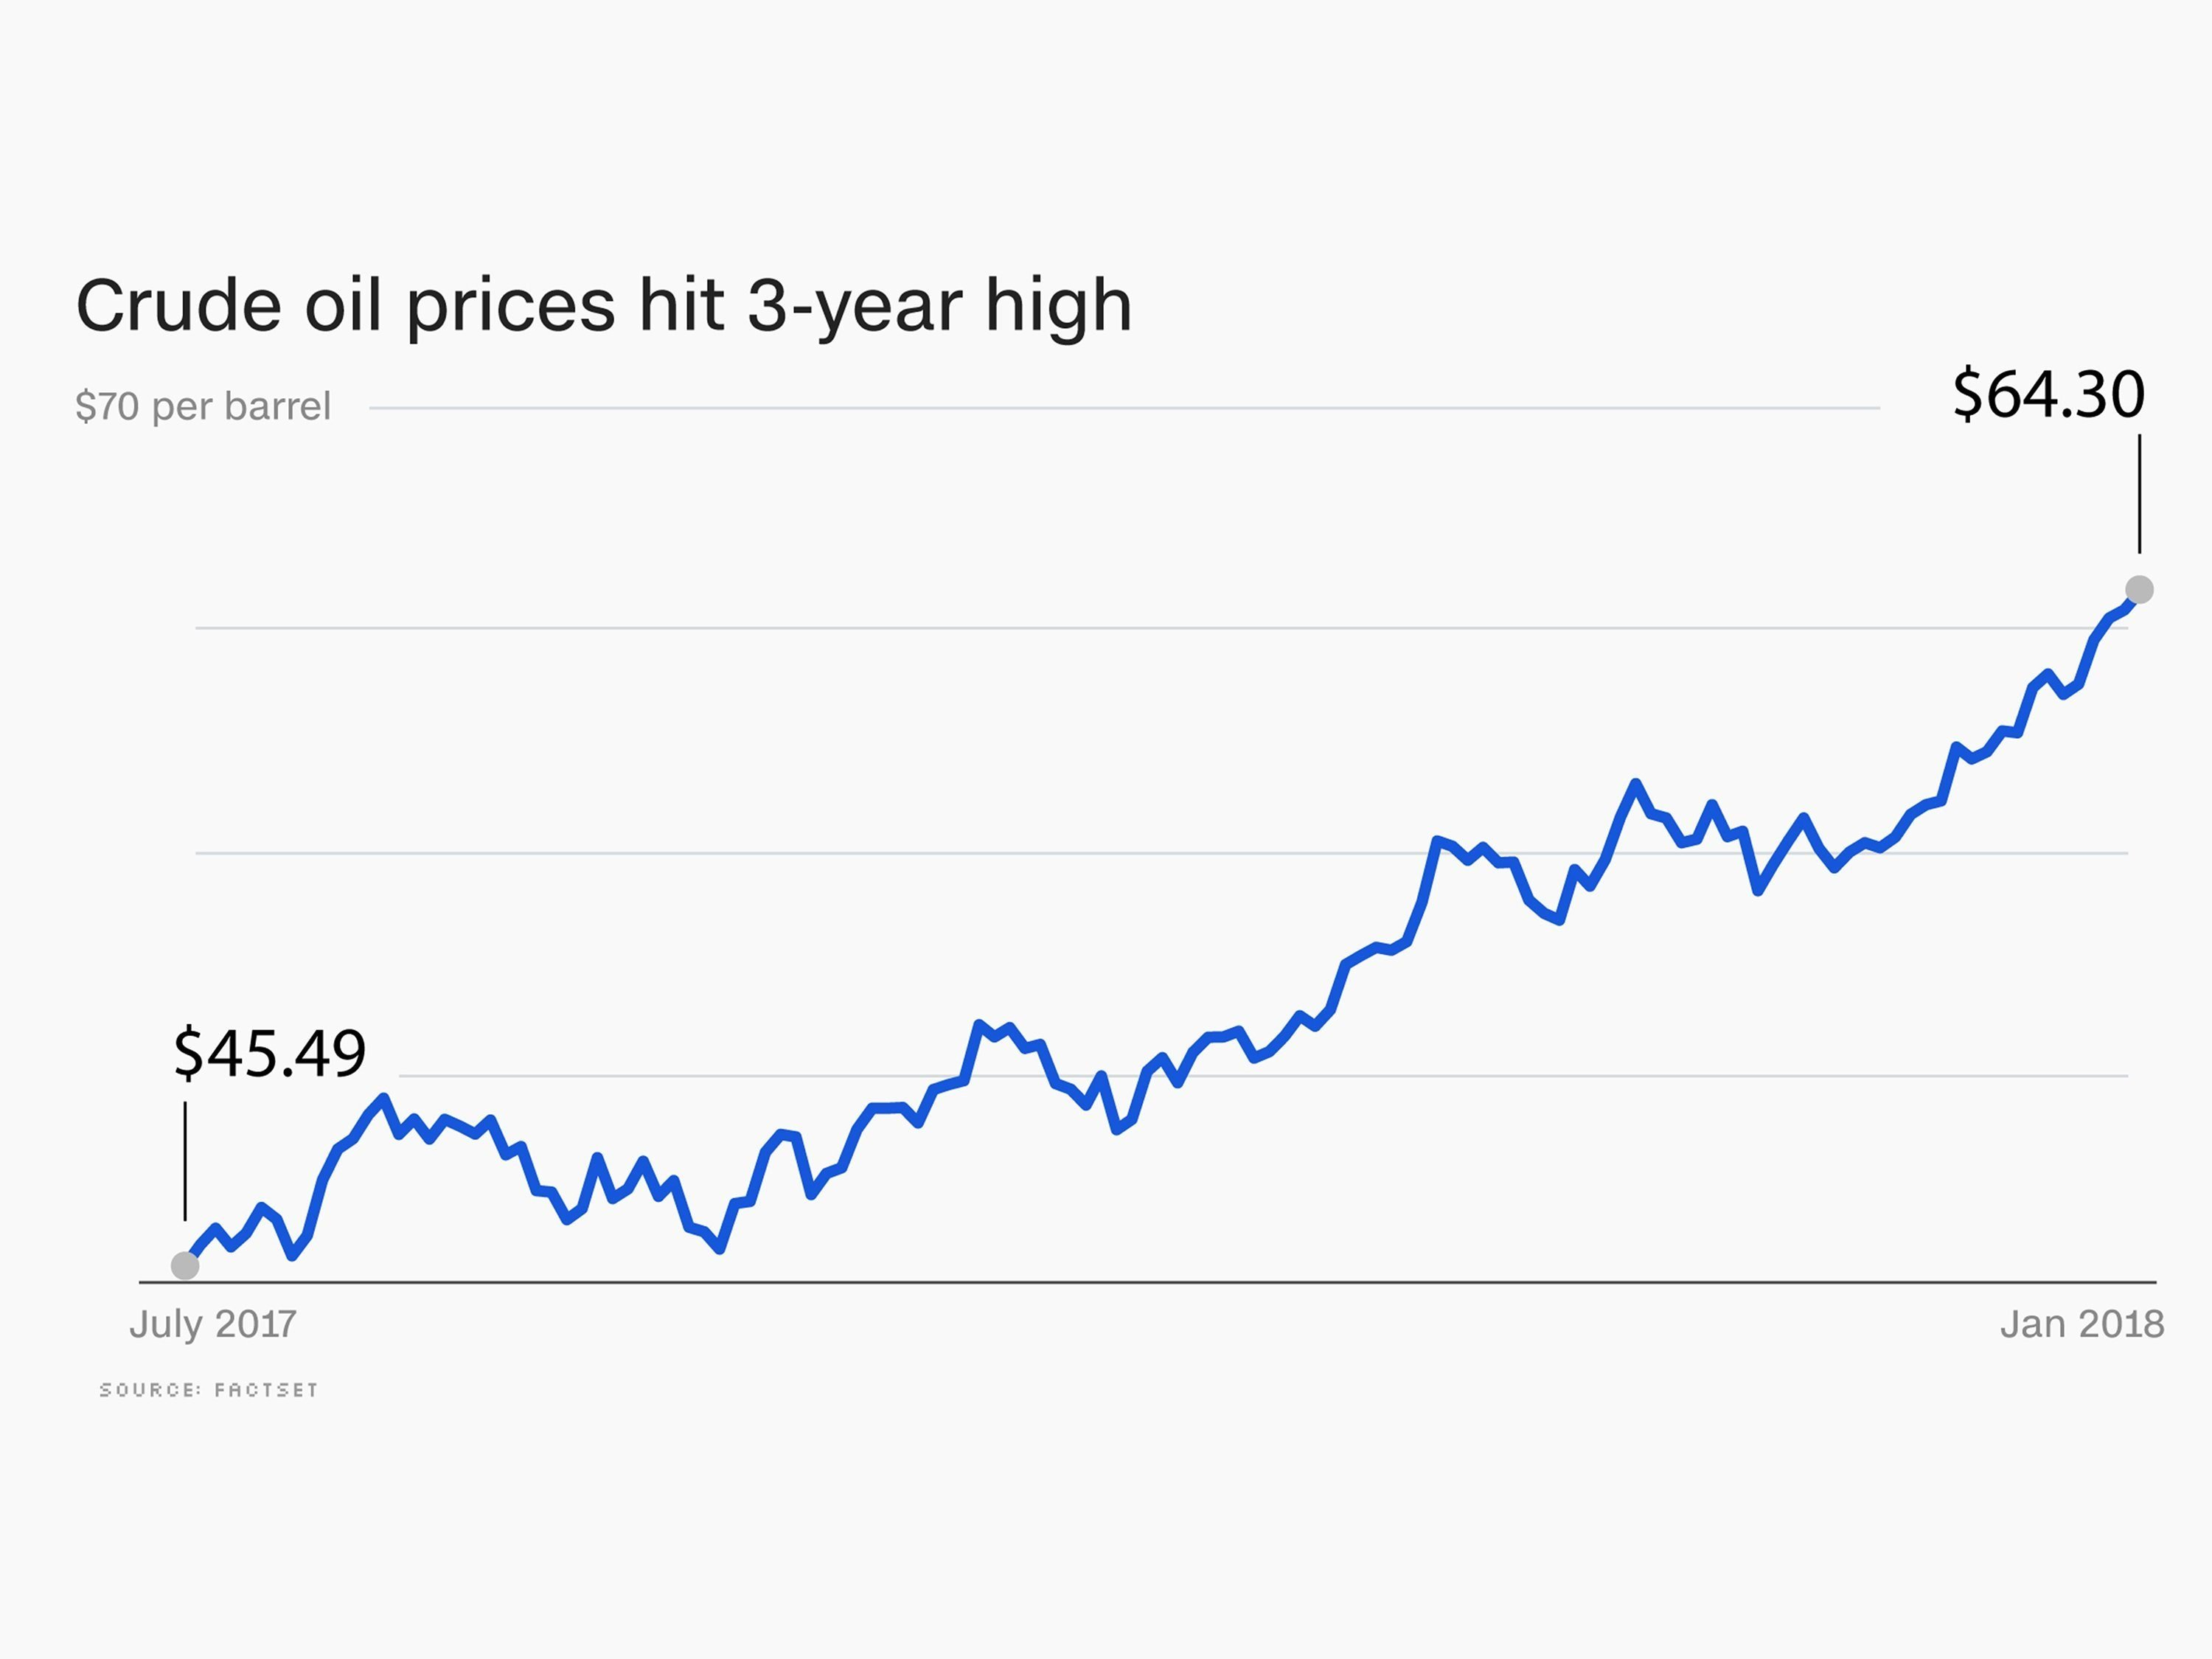 Crude oil surged 7% so far in 2018 and hit a three-year high of $64.81 a barrel on Monday, reflecting confidence that an epic supply glut may finally be over because of production cuts by OPEC and Russia. courtesy CNN.